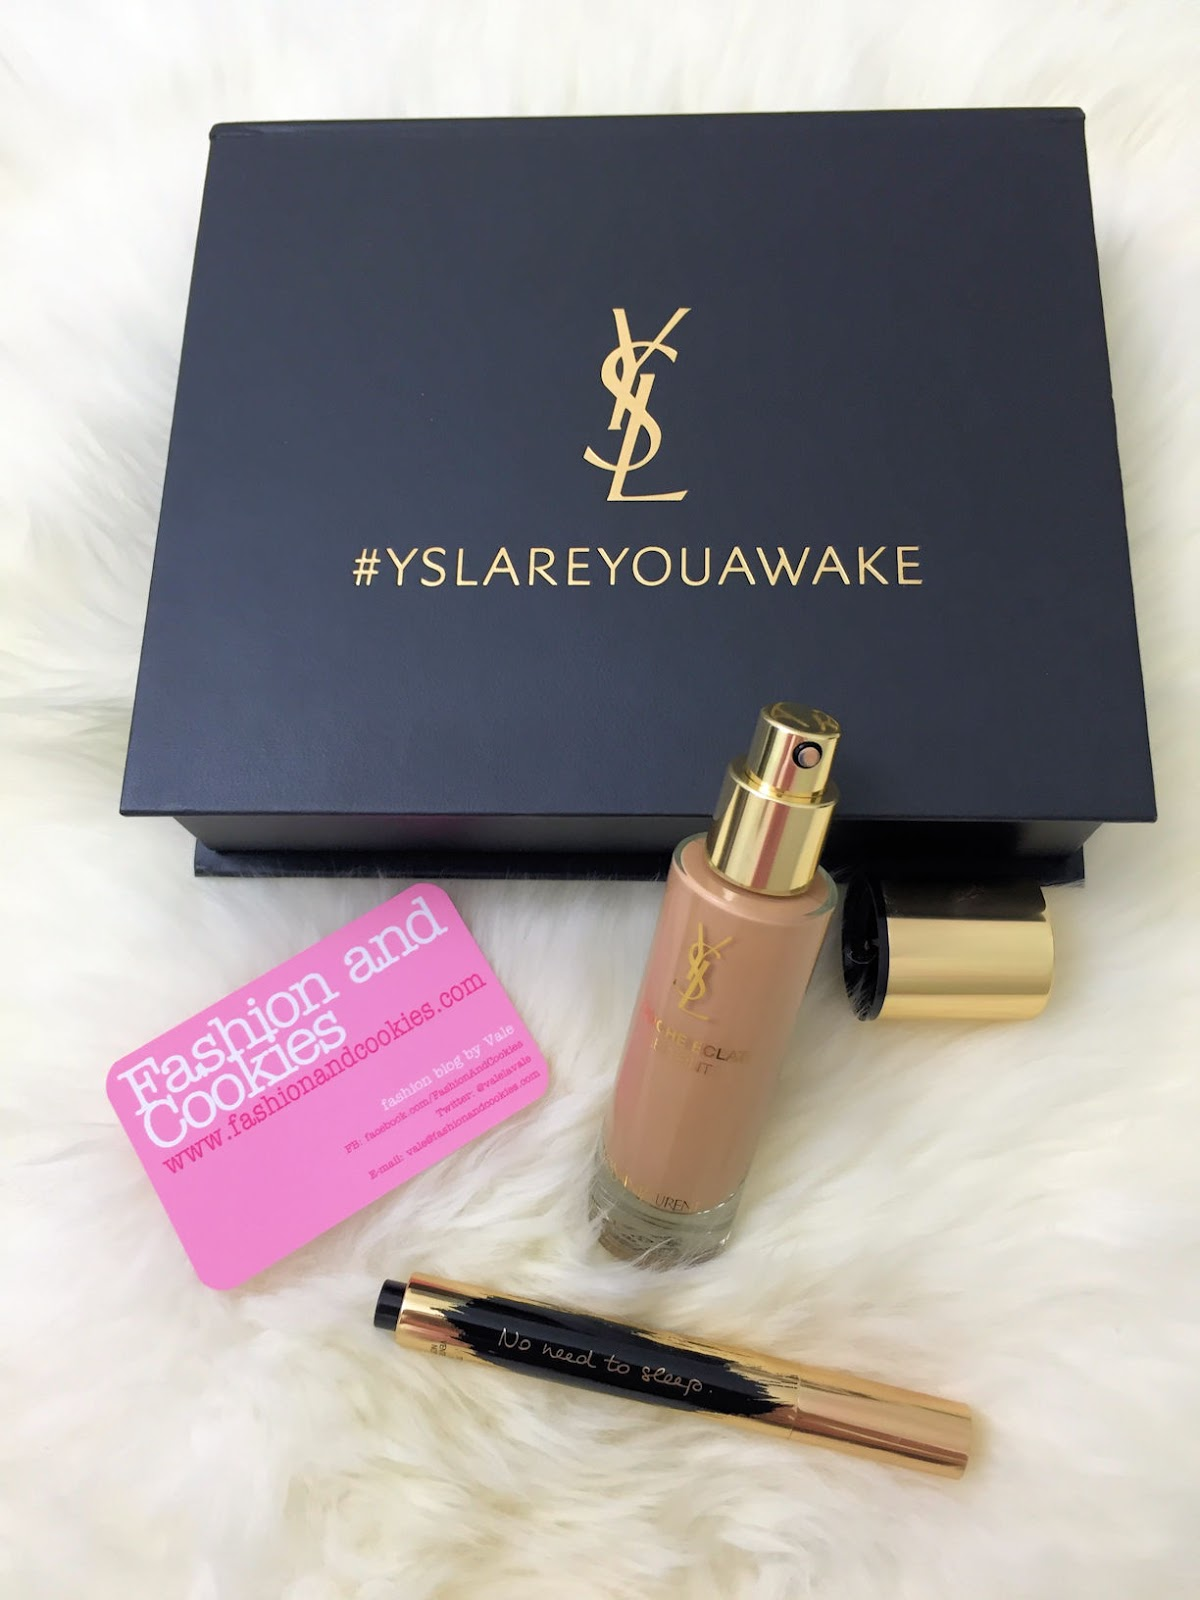 Touche Éclat Le Teint foundation and YSL Touche Éclat collector slogan edition on Fashion and Cookies beauty blog, beauty blogger